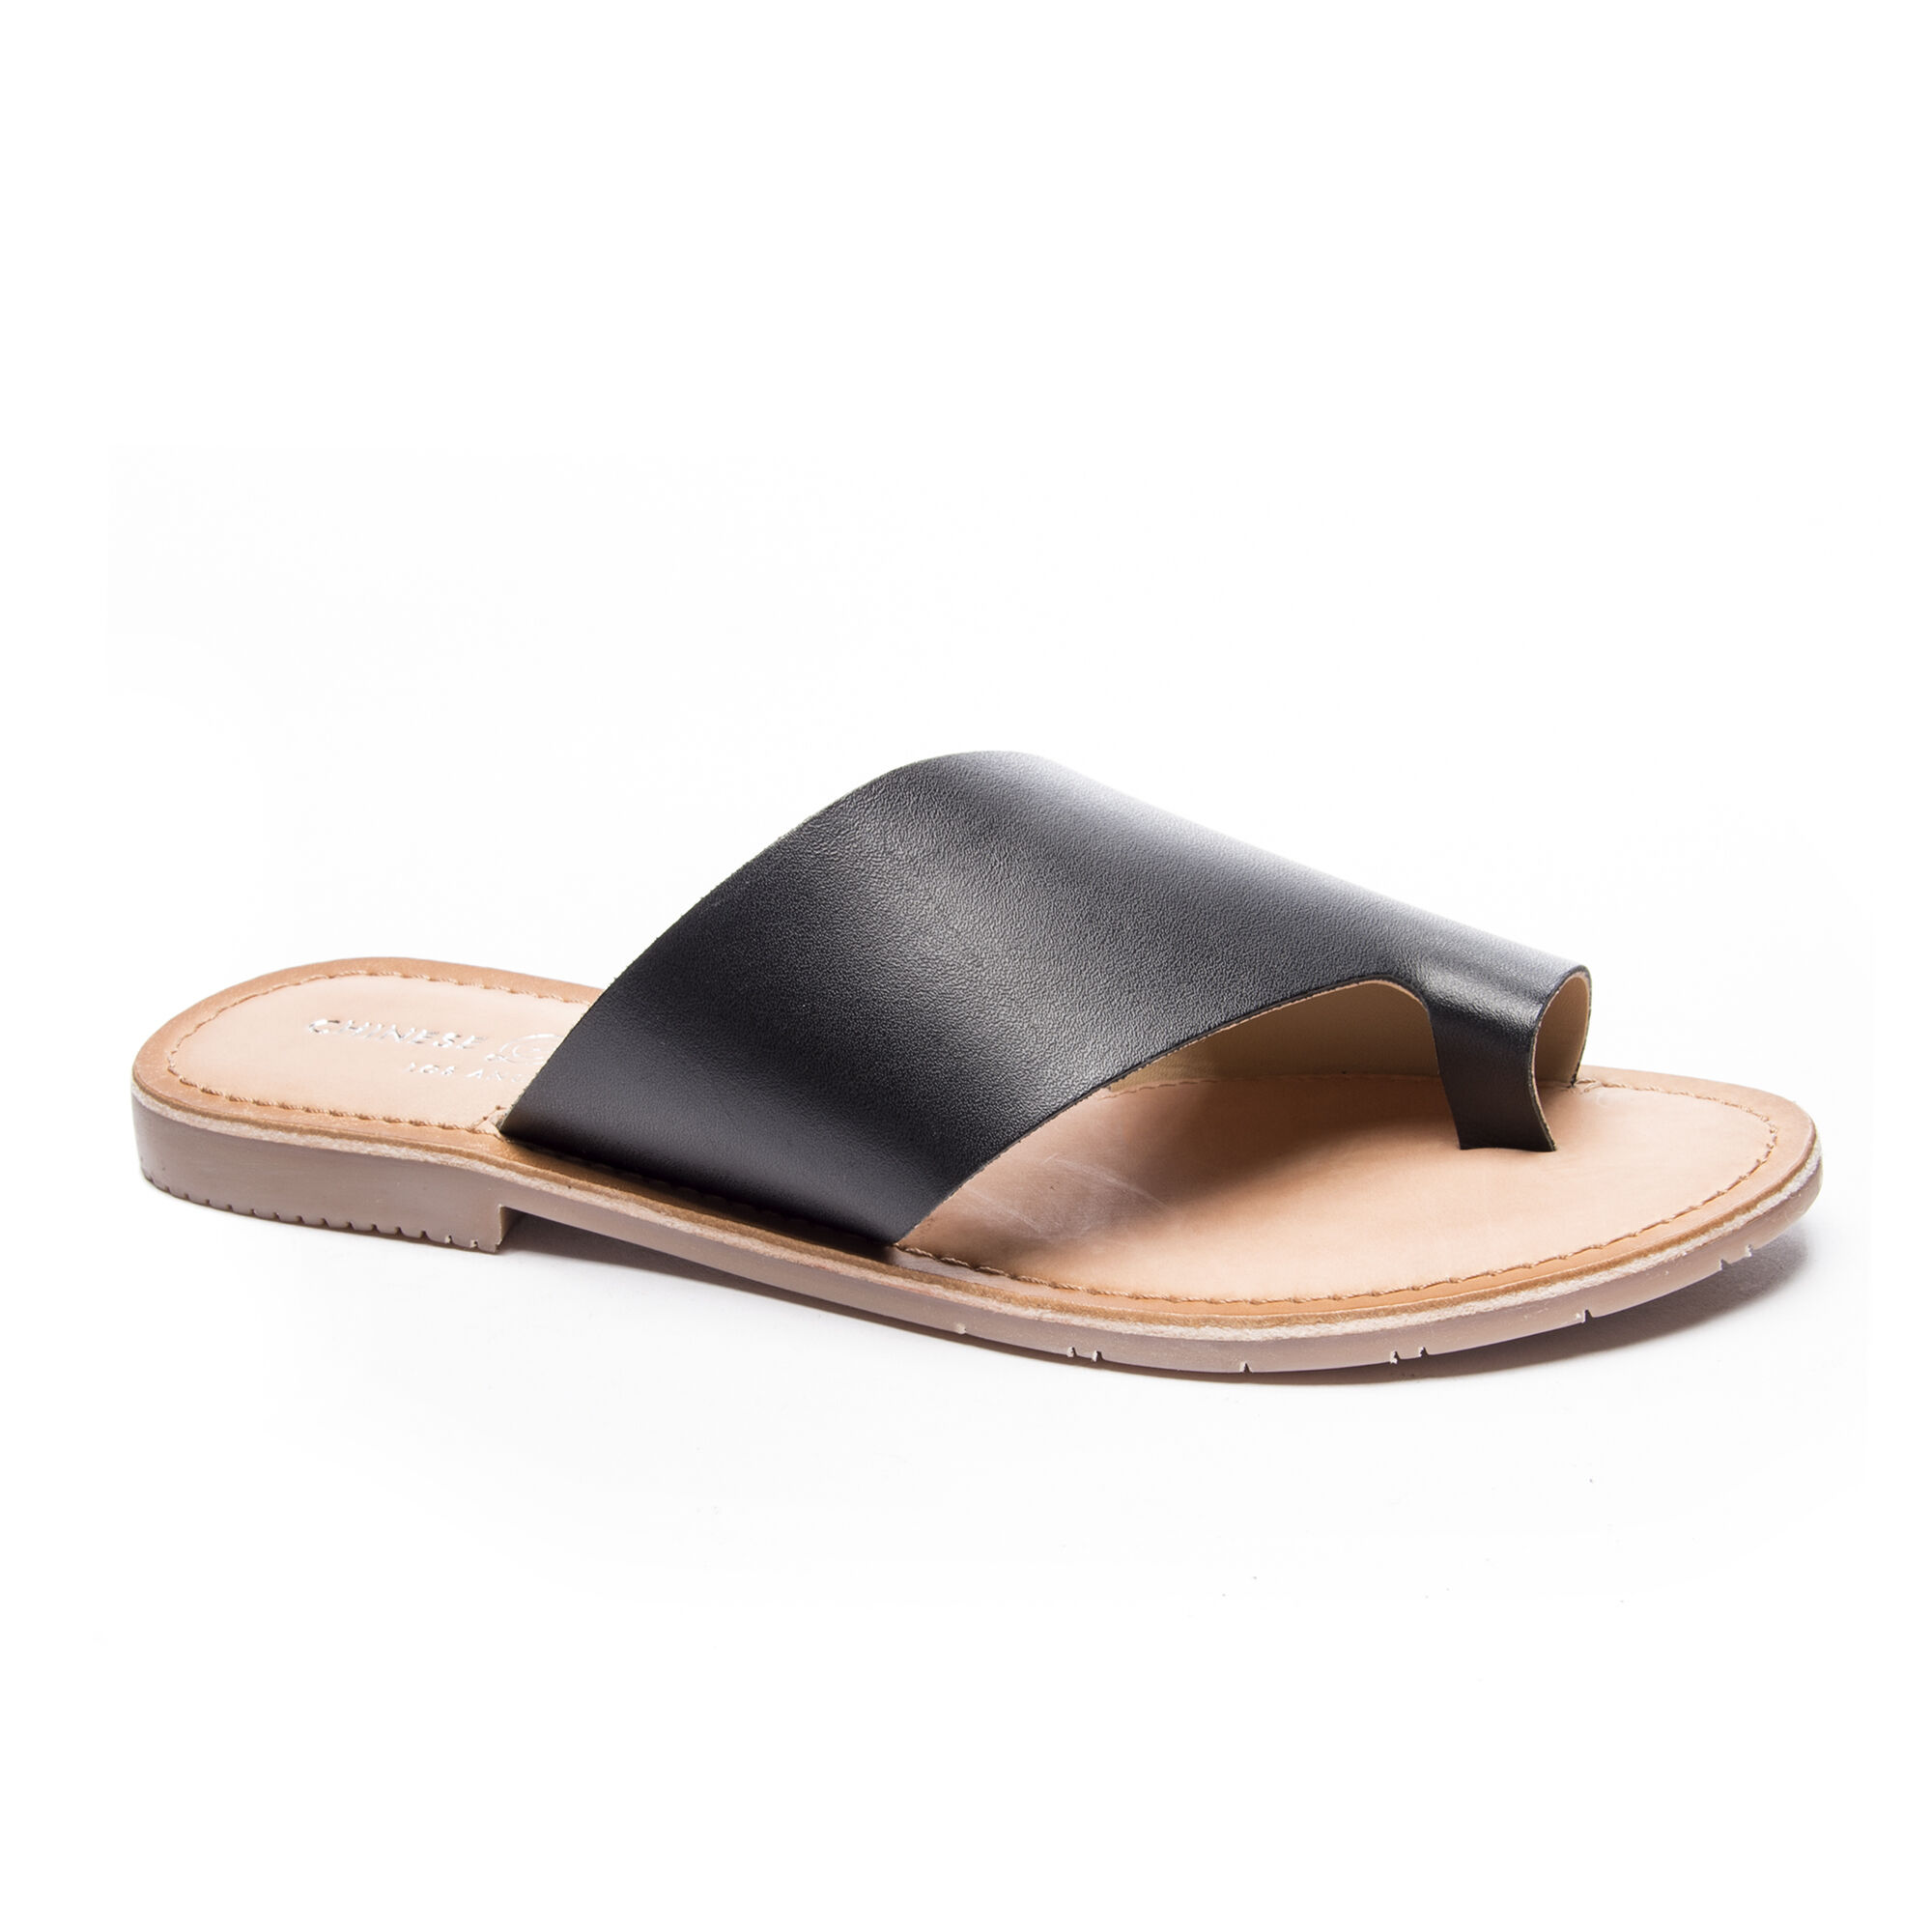 cbda833a4dc8 Gemmy Leather Slide Sandal